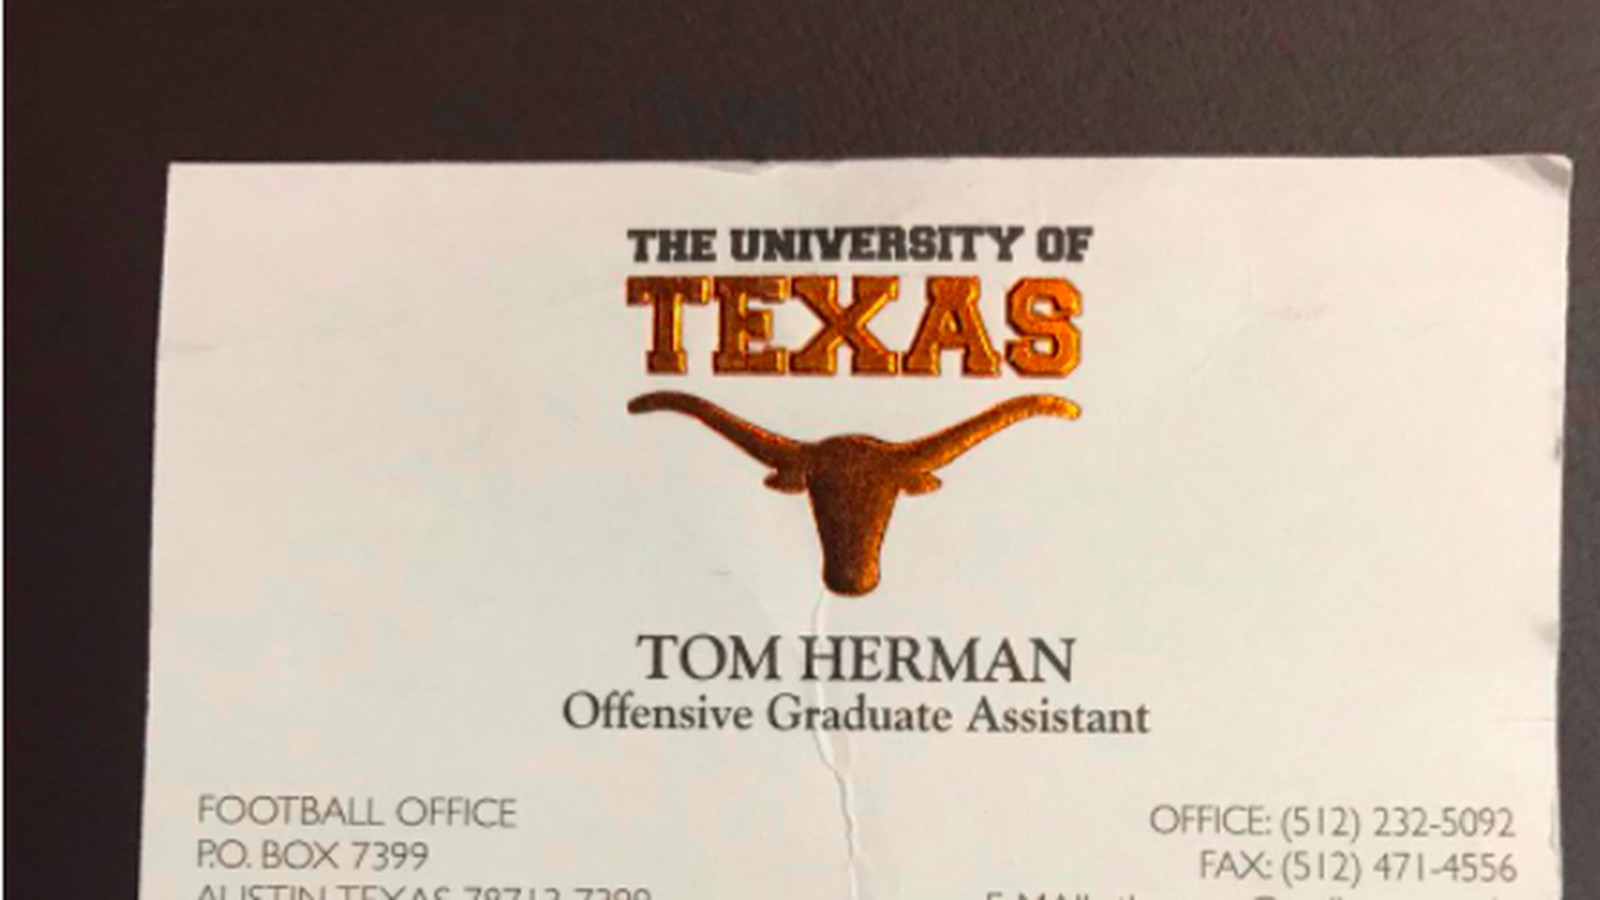 Tom Herman shows hard work pays off with his two Texas business ...